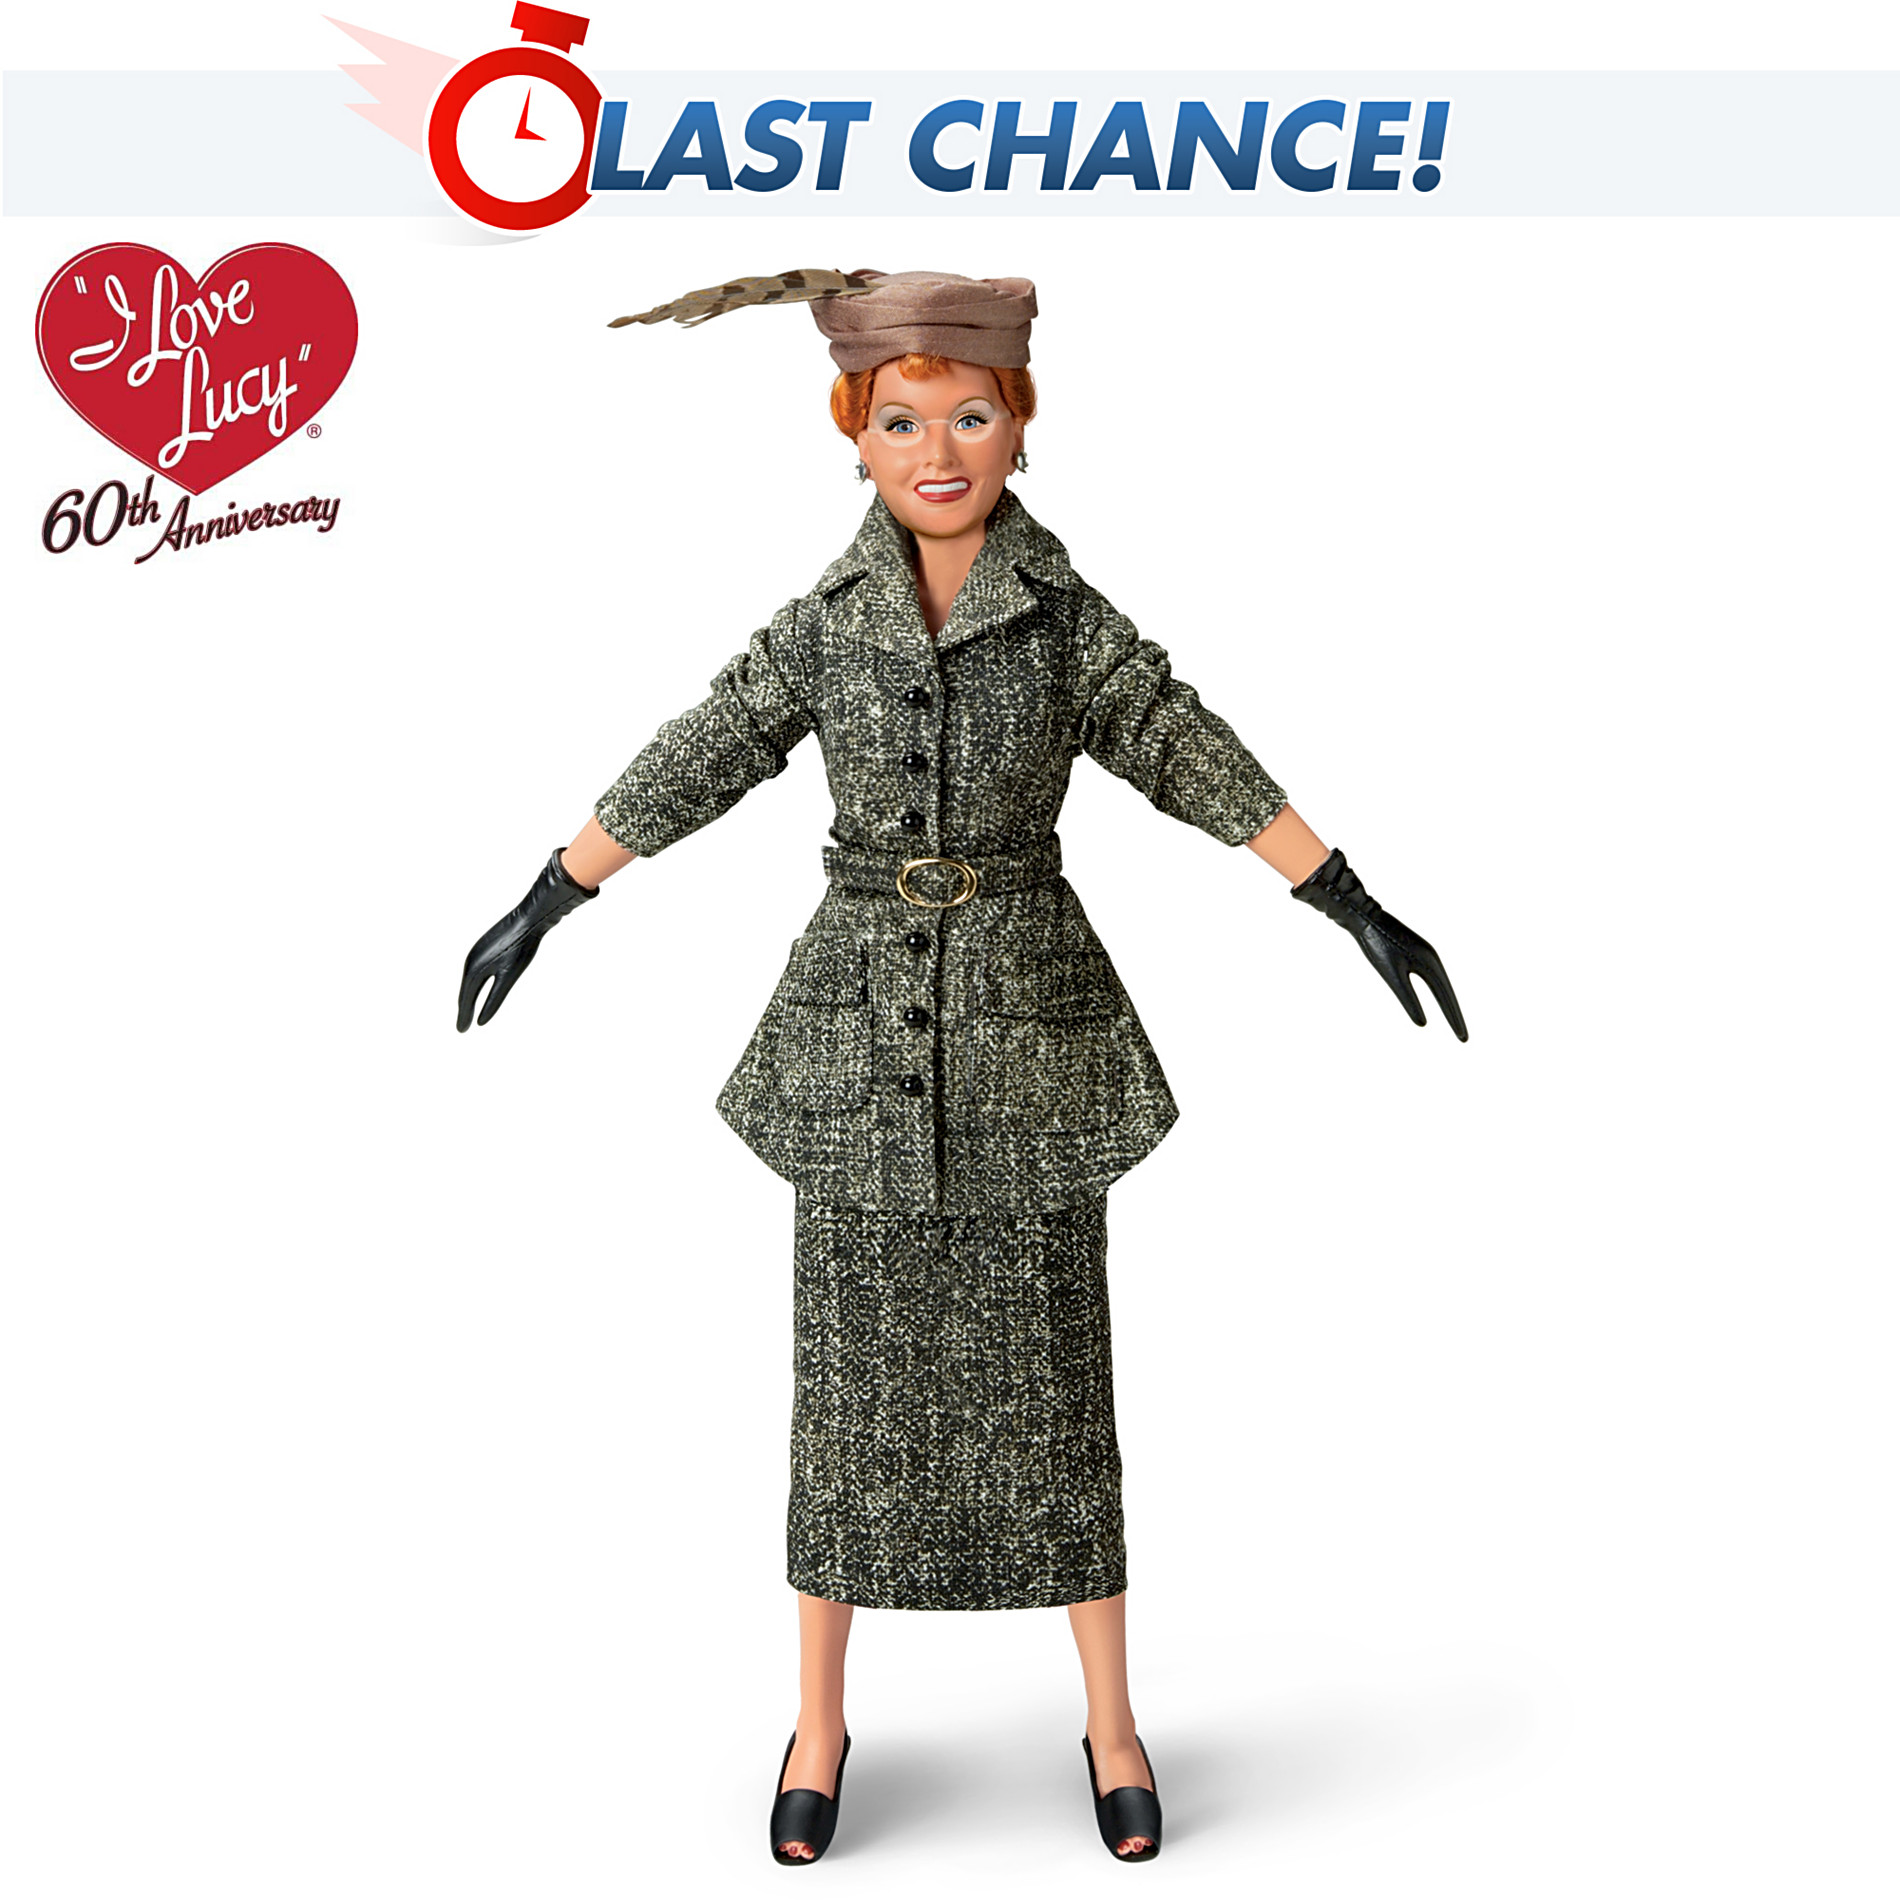 The Ashton-Drake Galleries I LOVE LUCY The Fashion Show Doll at Sears.com